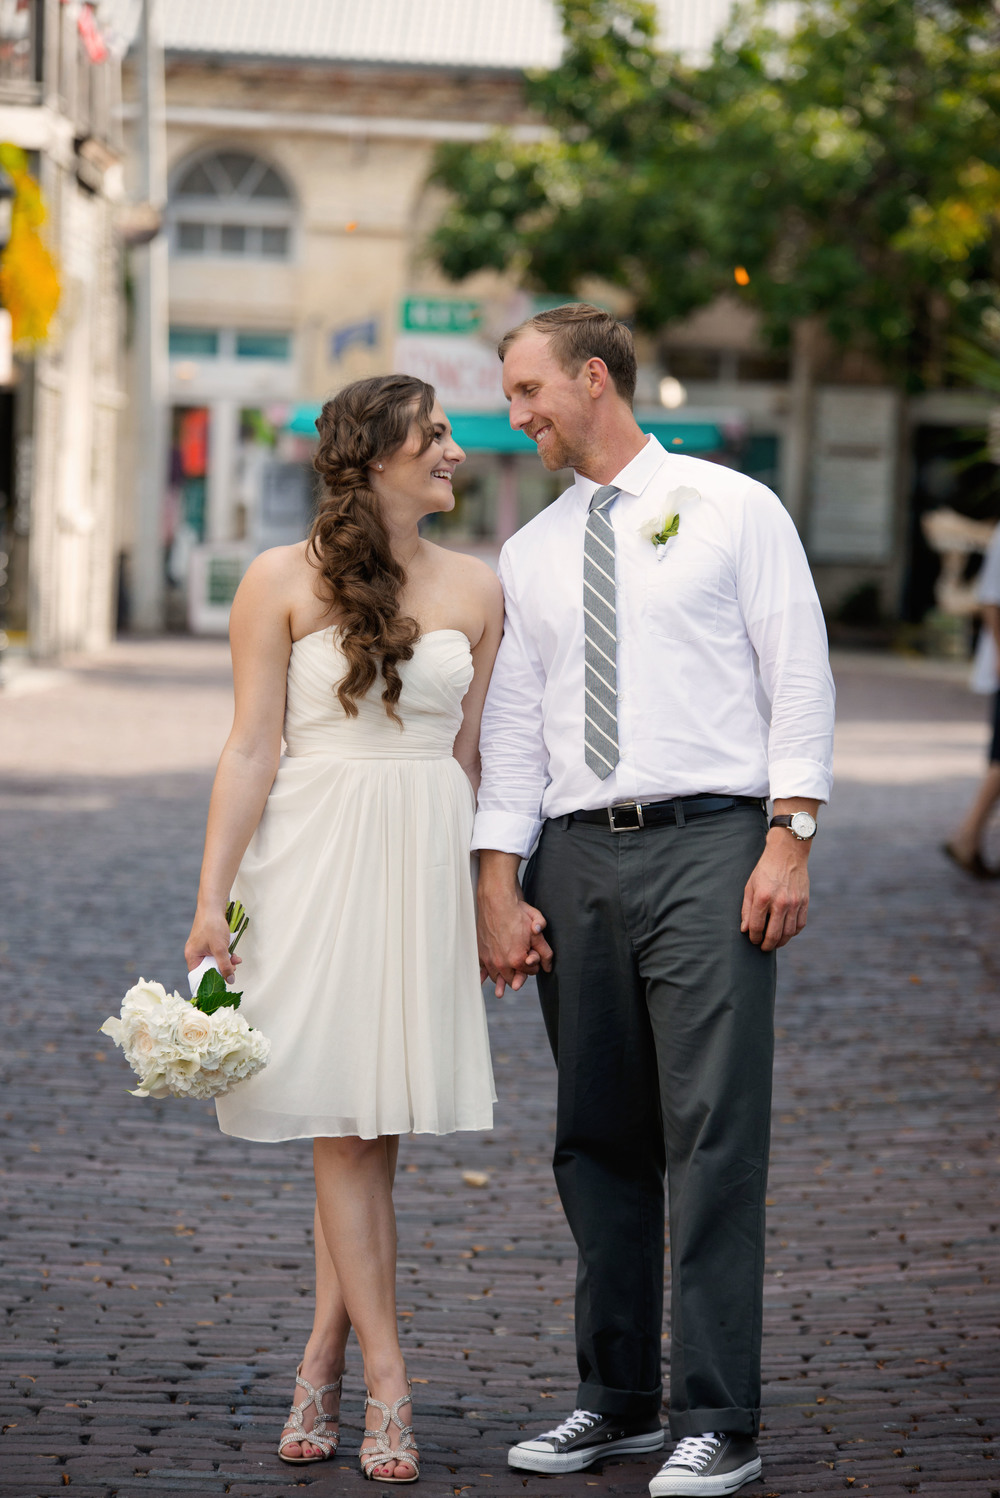 Katie & Brad {Real Wedding} | Just Save the Date | Photo Credit: Rachel E. Ligon Photography